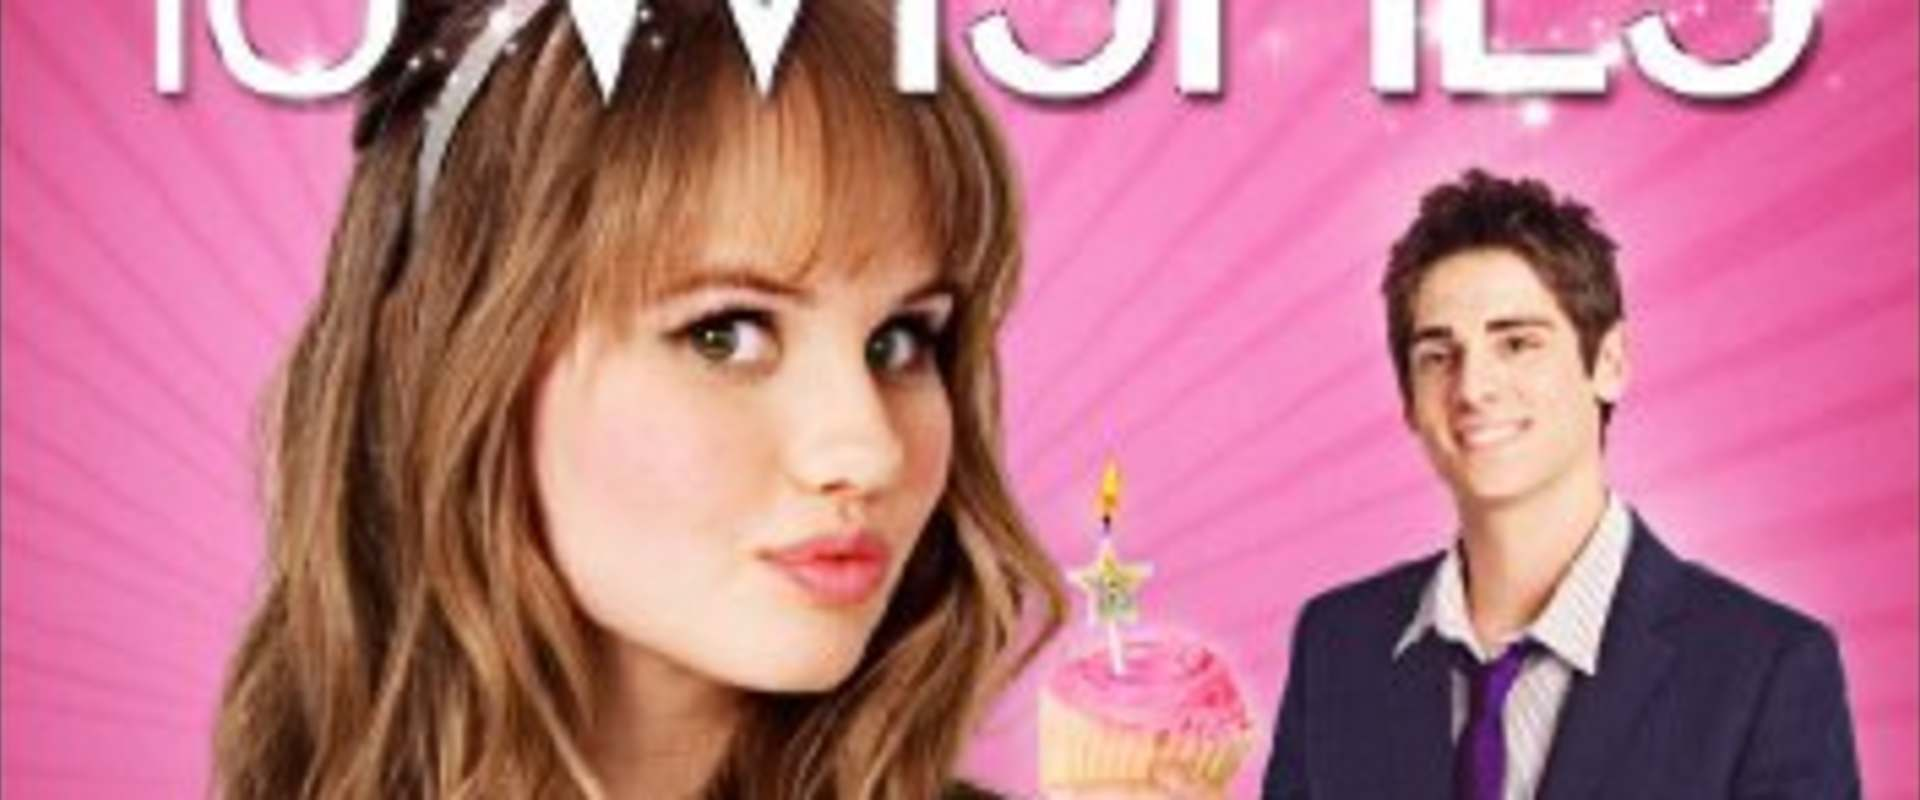 16 Wishes Background 1 2